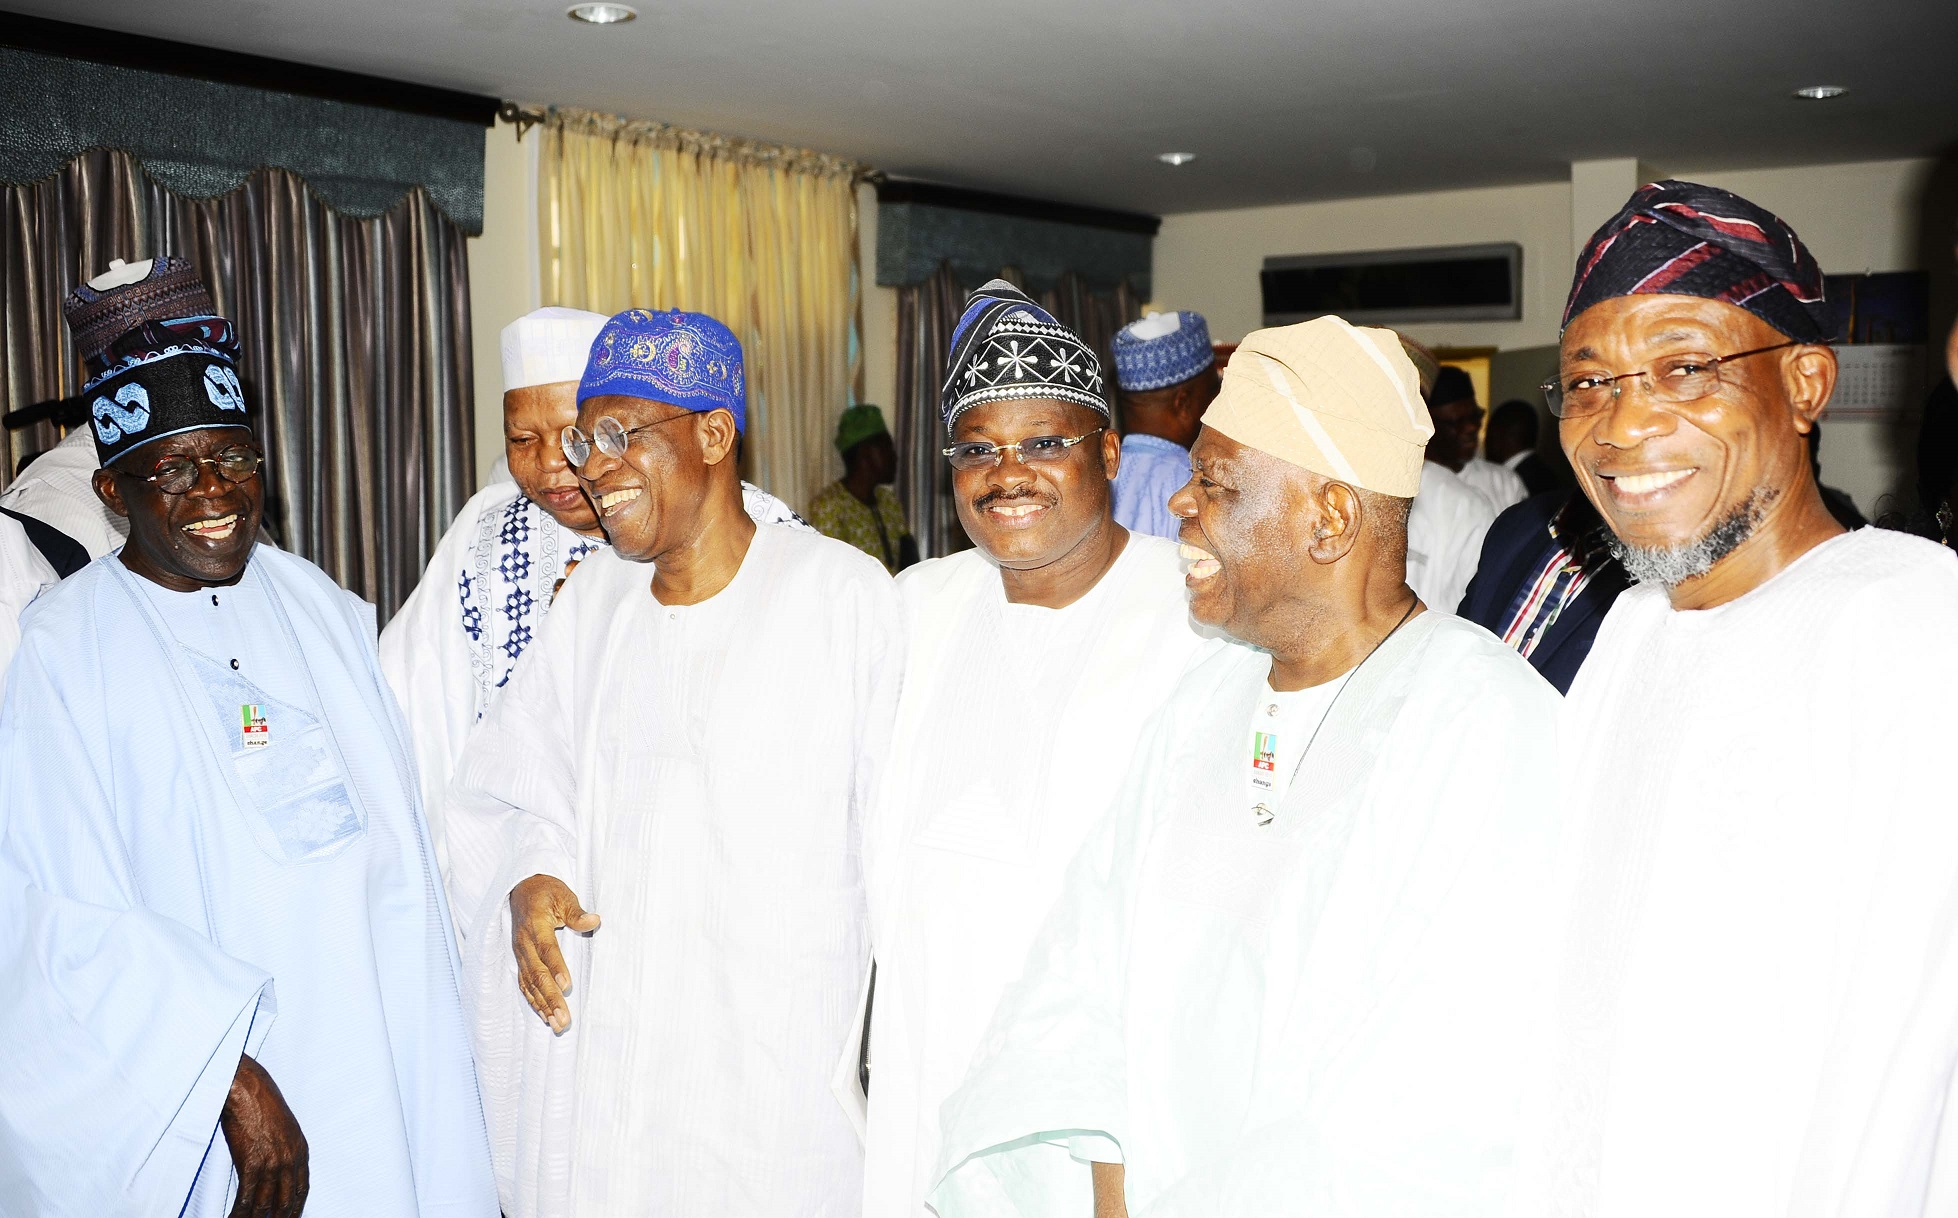 From right, Governor State of Osun, Ogbeni Rauf Aregbesola; National Leader, All Progressives Congress (APC), Chief Bisi Akande; Oyo State Governor, Abiola Ajimobi; APC Publicity Secretary, Lai Mohammed; Former Kogi State Governor, Prince Abubakar Audu; Asiwaju Bola Tinubu and others, during the presentation of Certificate of Return to the President-Elect, Muhammadu Buhari at National Conference Centre, Abuja on Wednesday 01-04-2015